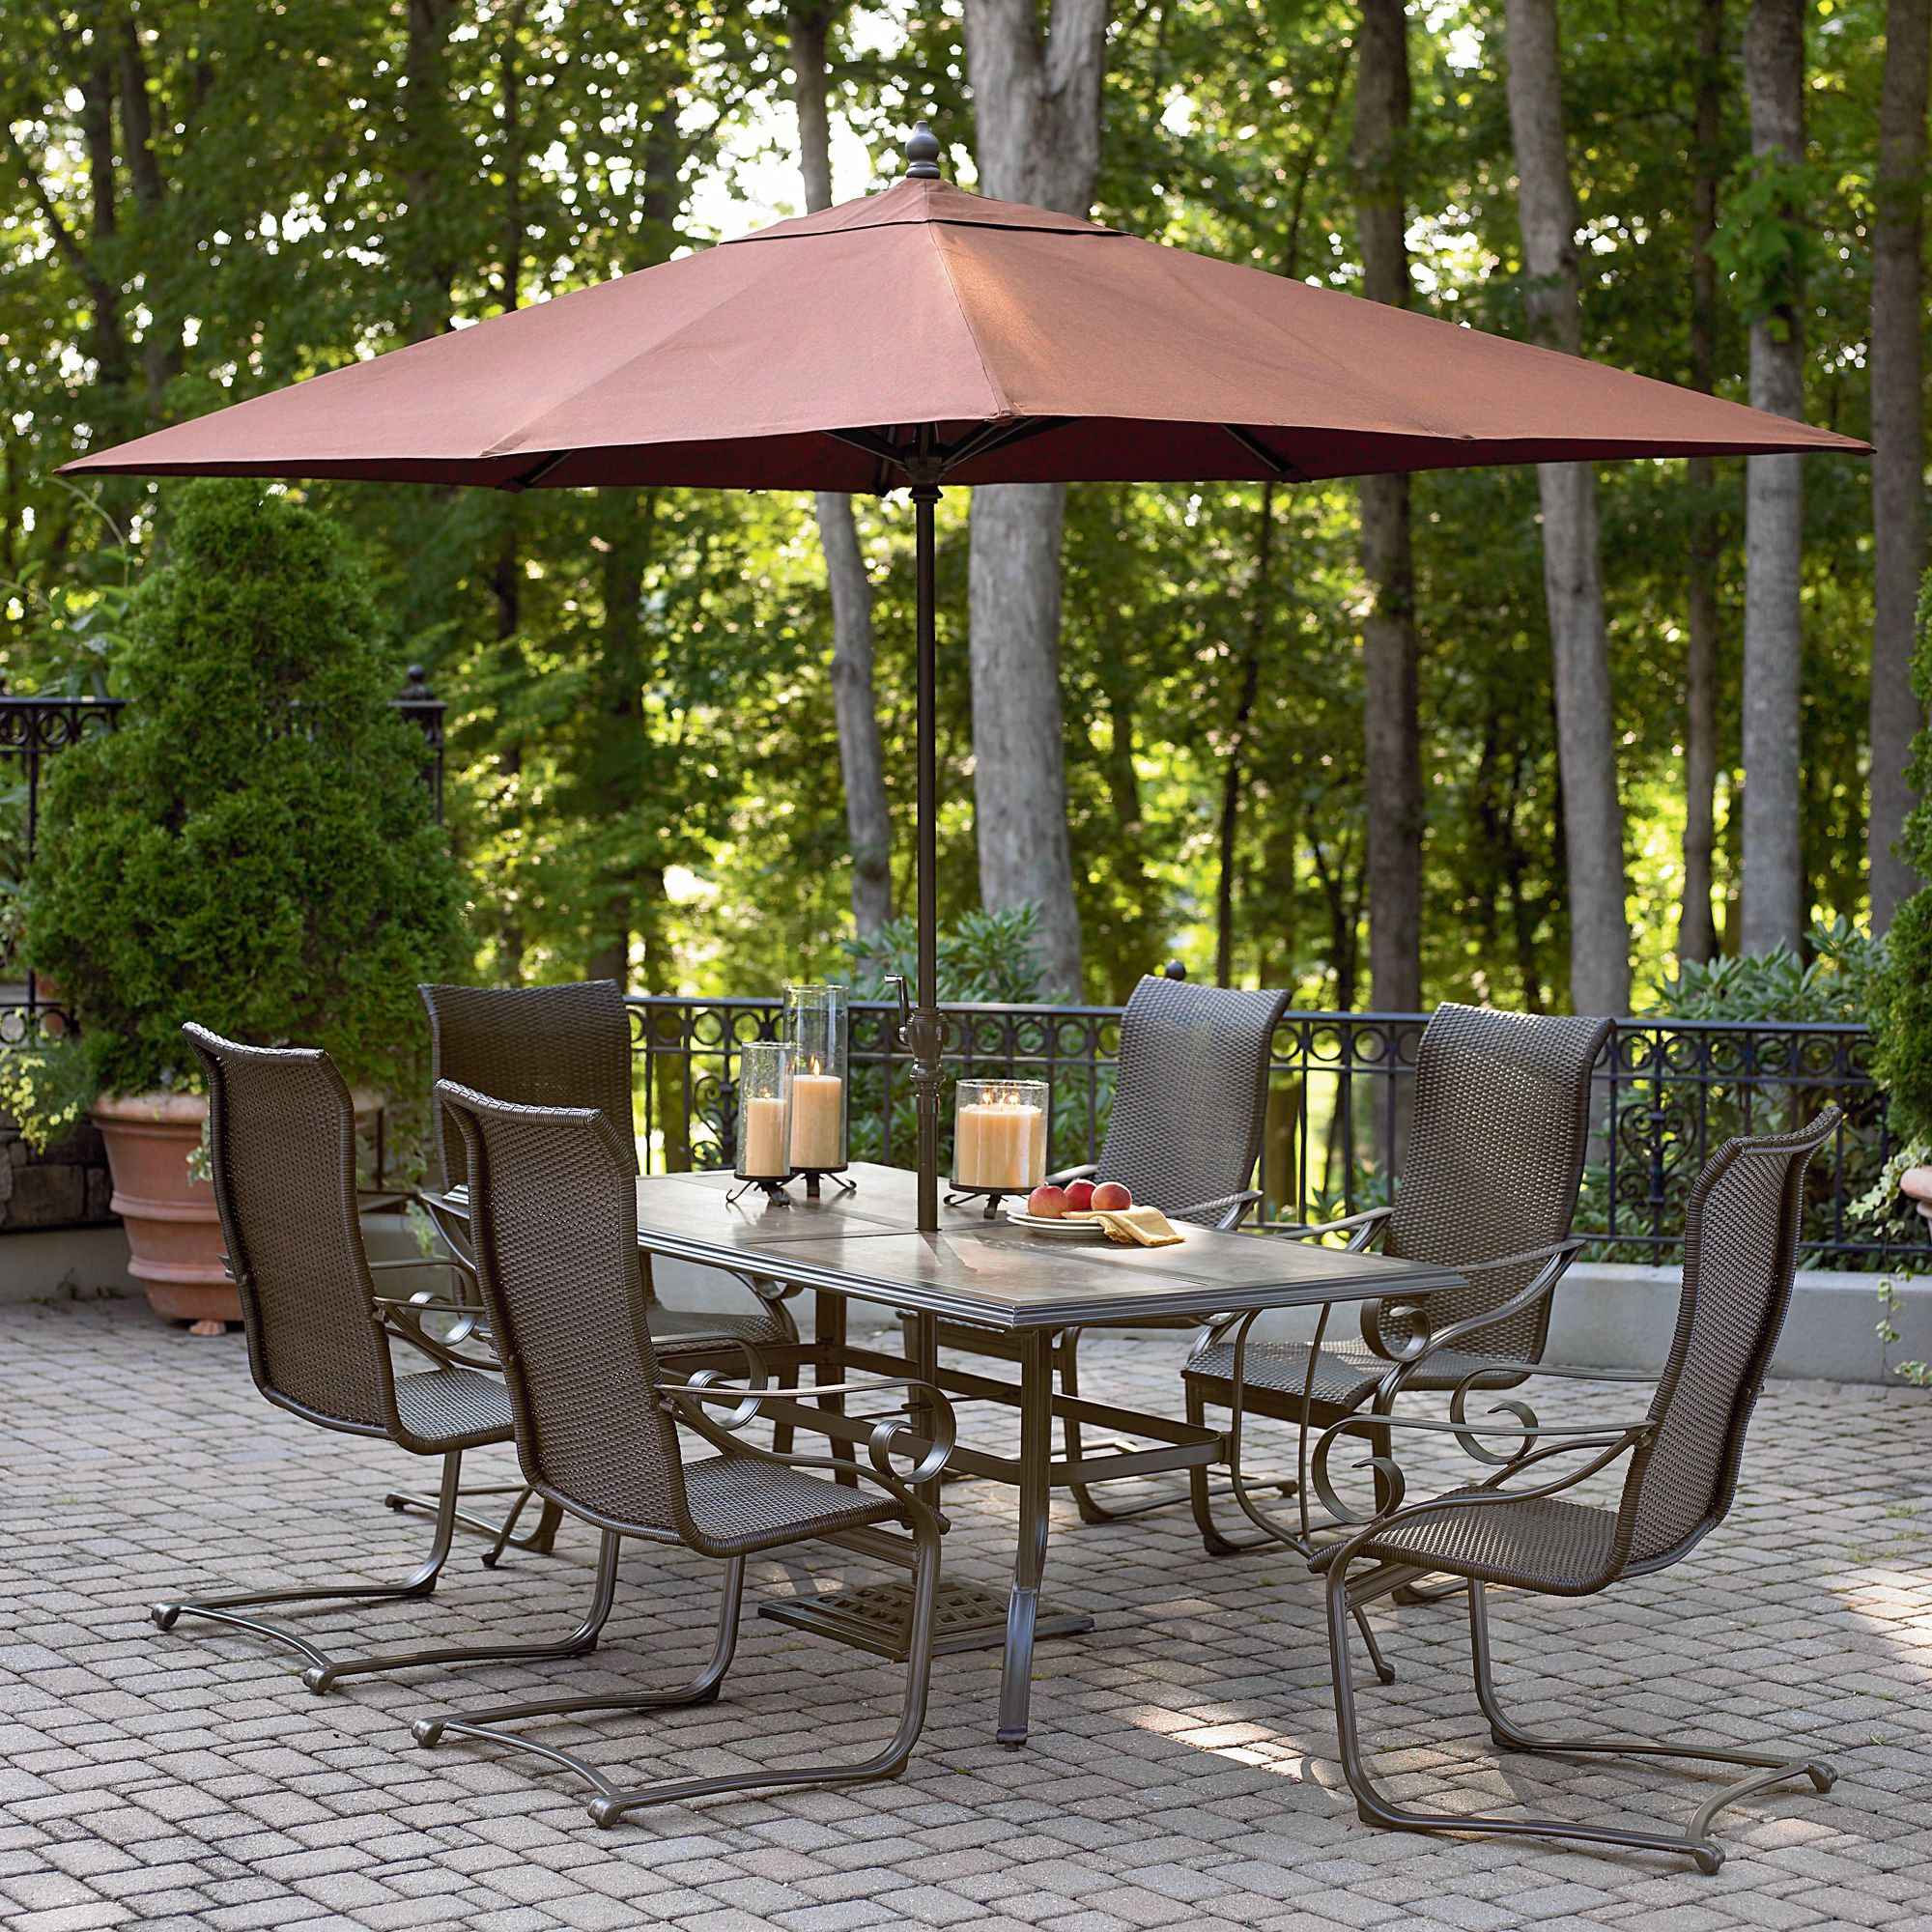 garden oasis patio chairs milo baughman thayer coggin chair rect umb essex 9 ft h umbrella sears